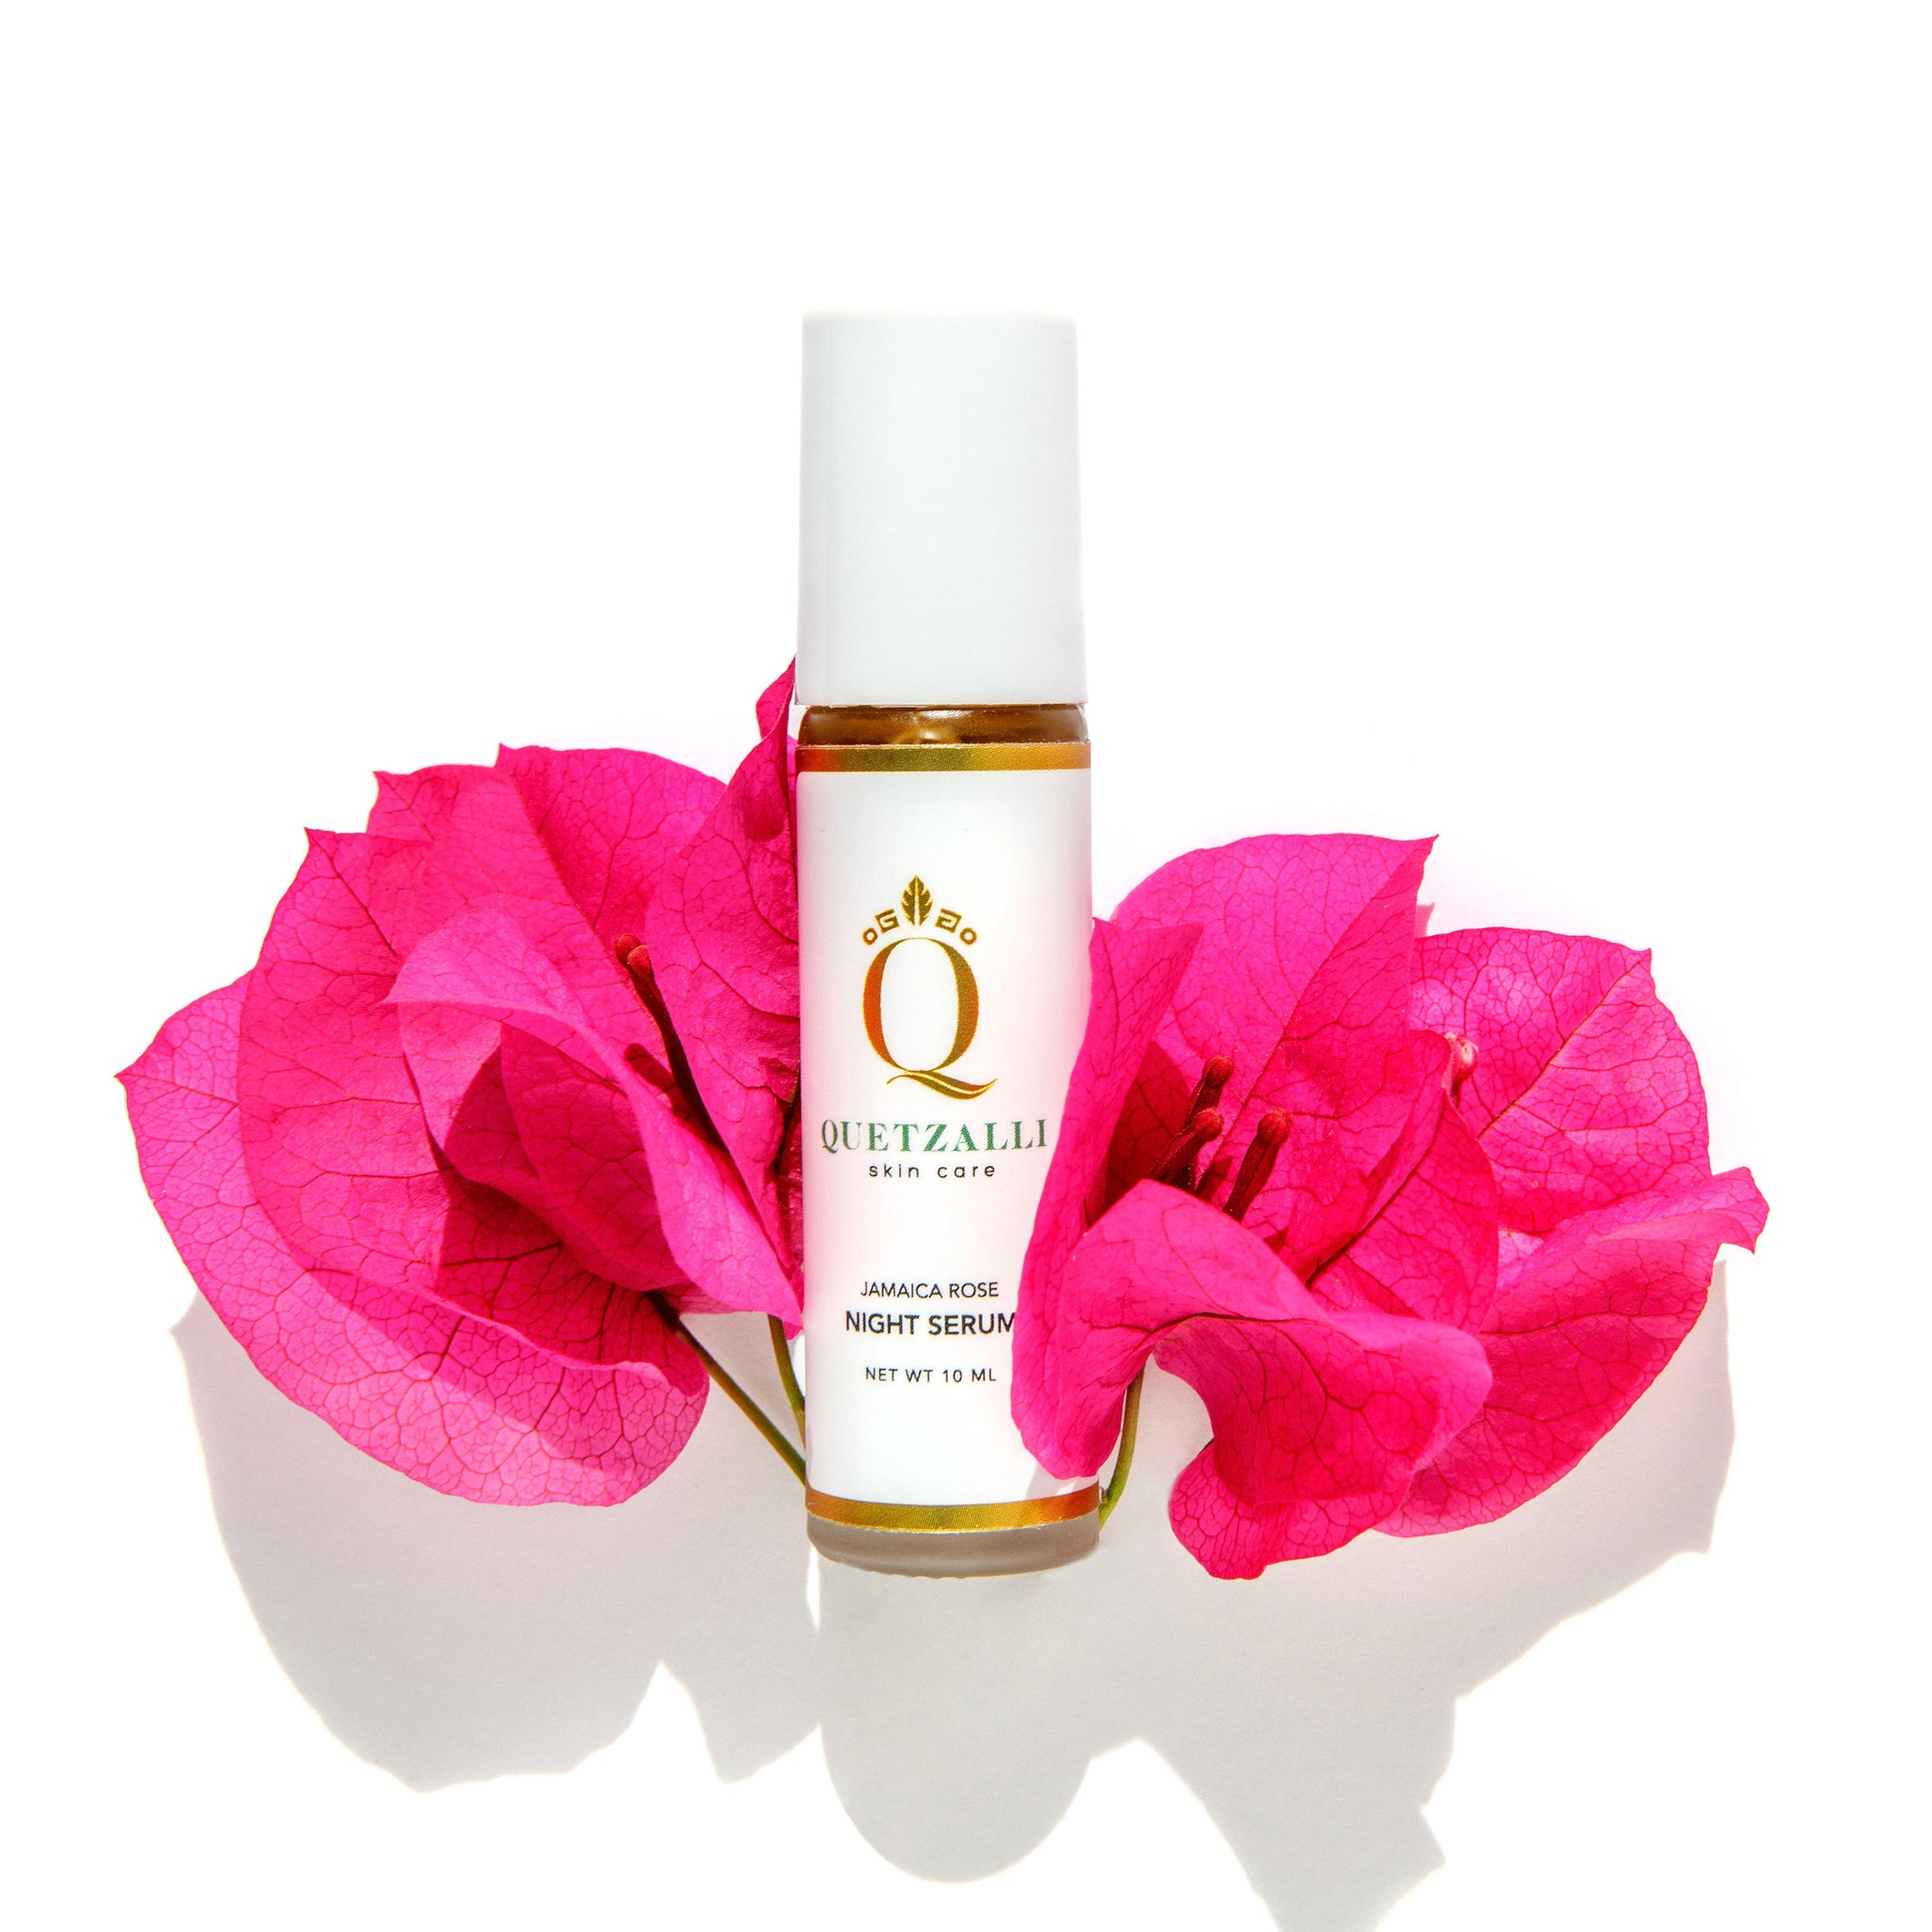 Quetzalli Skin Care Non Toxic Jamaica Rose Night Serum Inspired by the Ancient Aztec & Mayan empires. Organic Vegan Cruelty Free